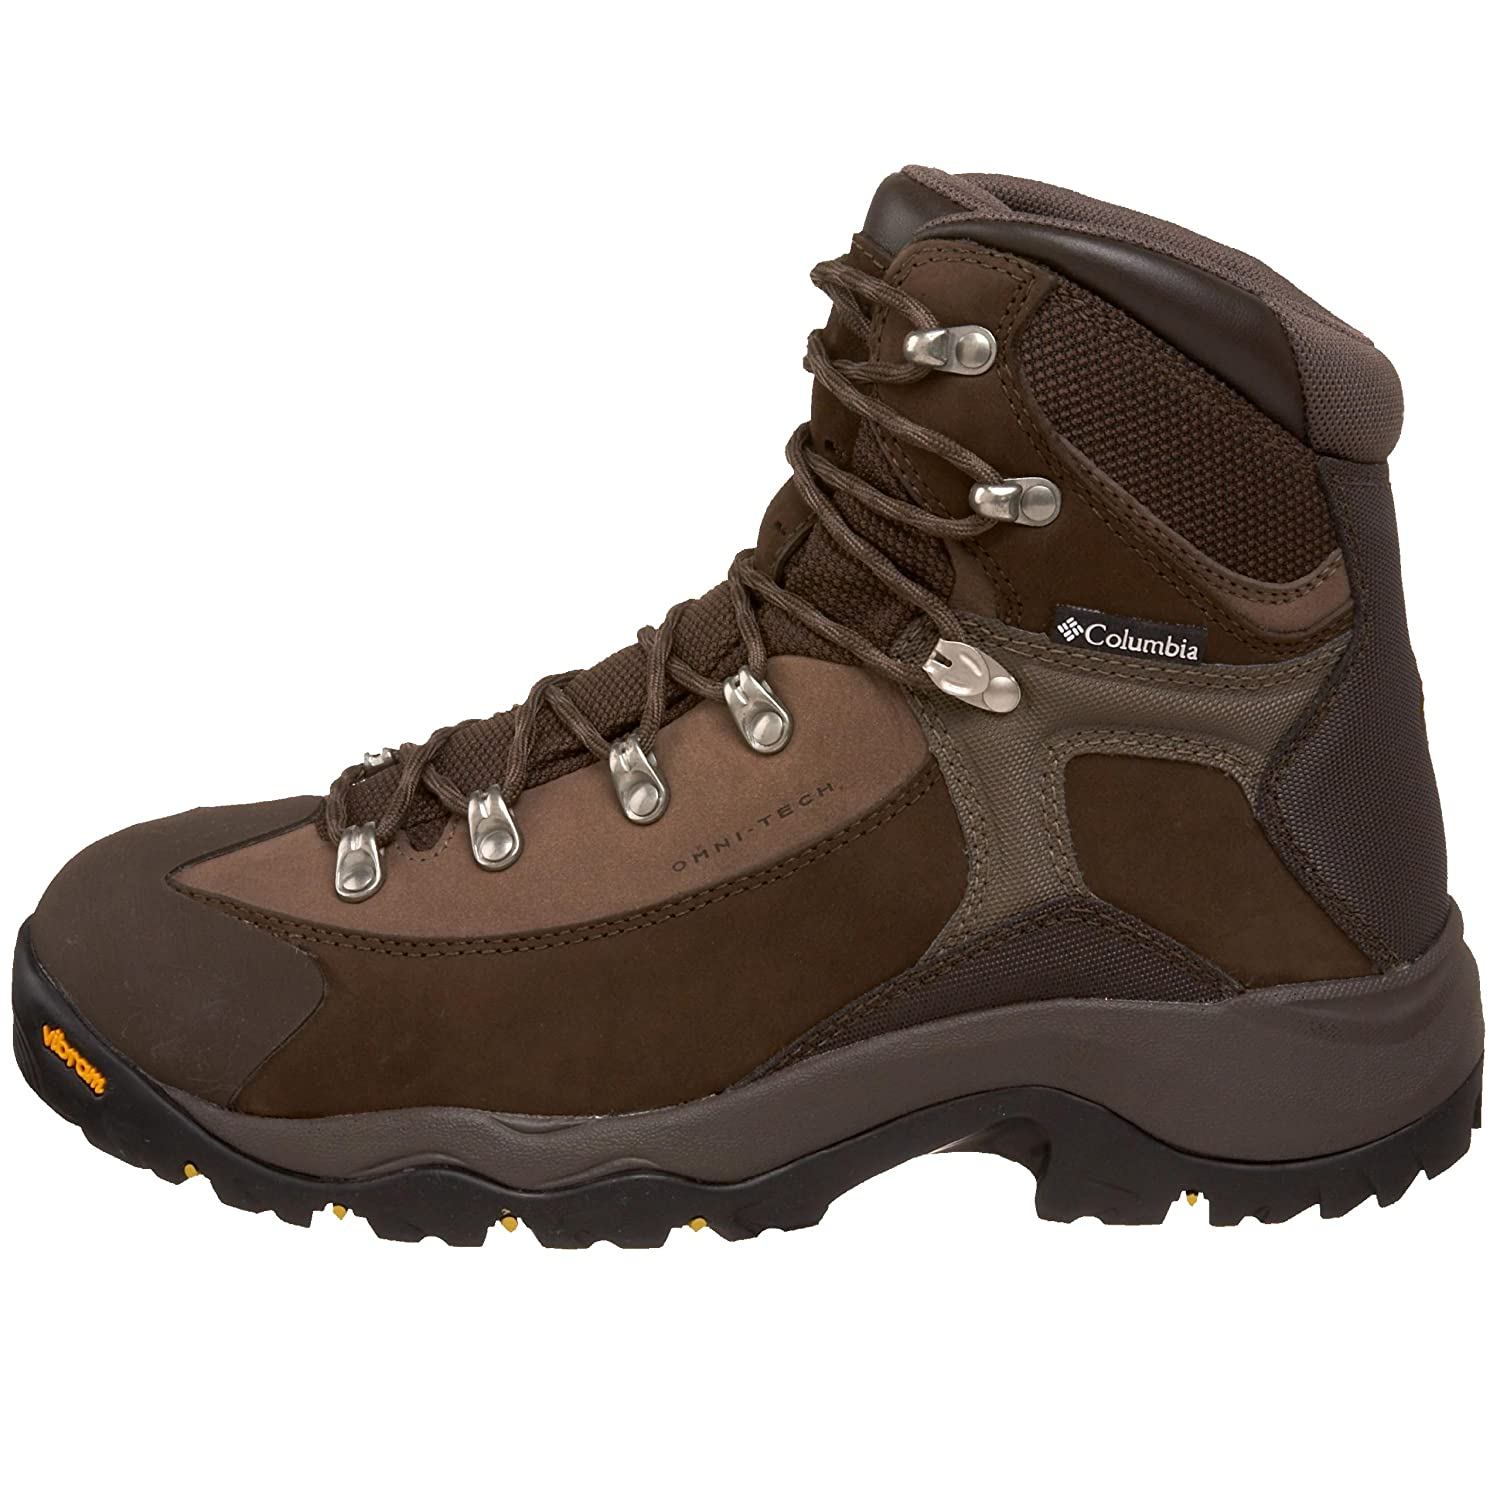 222b84e88c1 Amazon.com | Columbia Men's Daska Pass Omni-Tech Hiking Boot ...